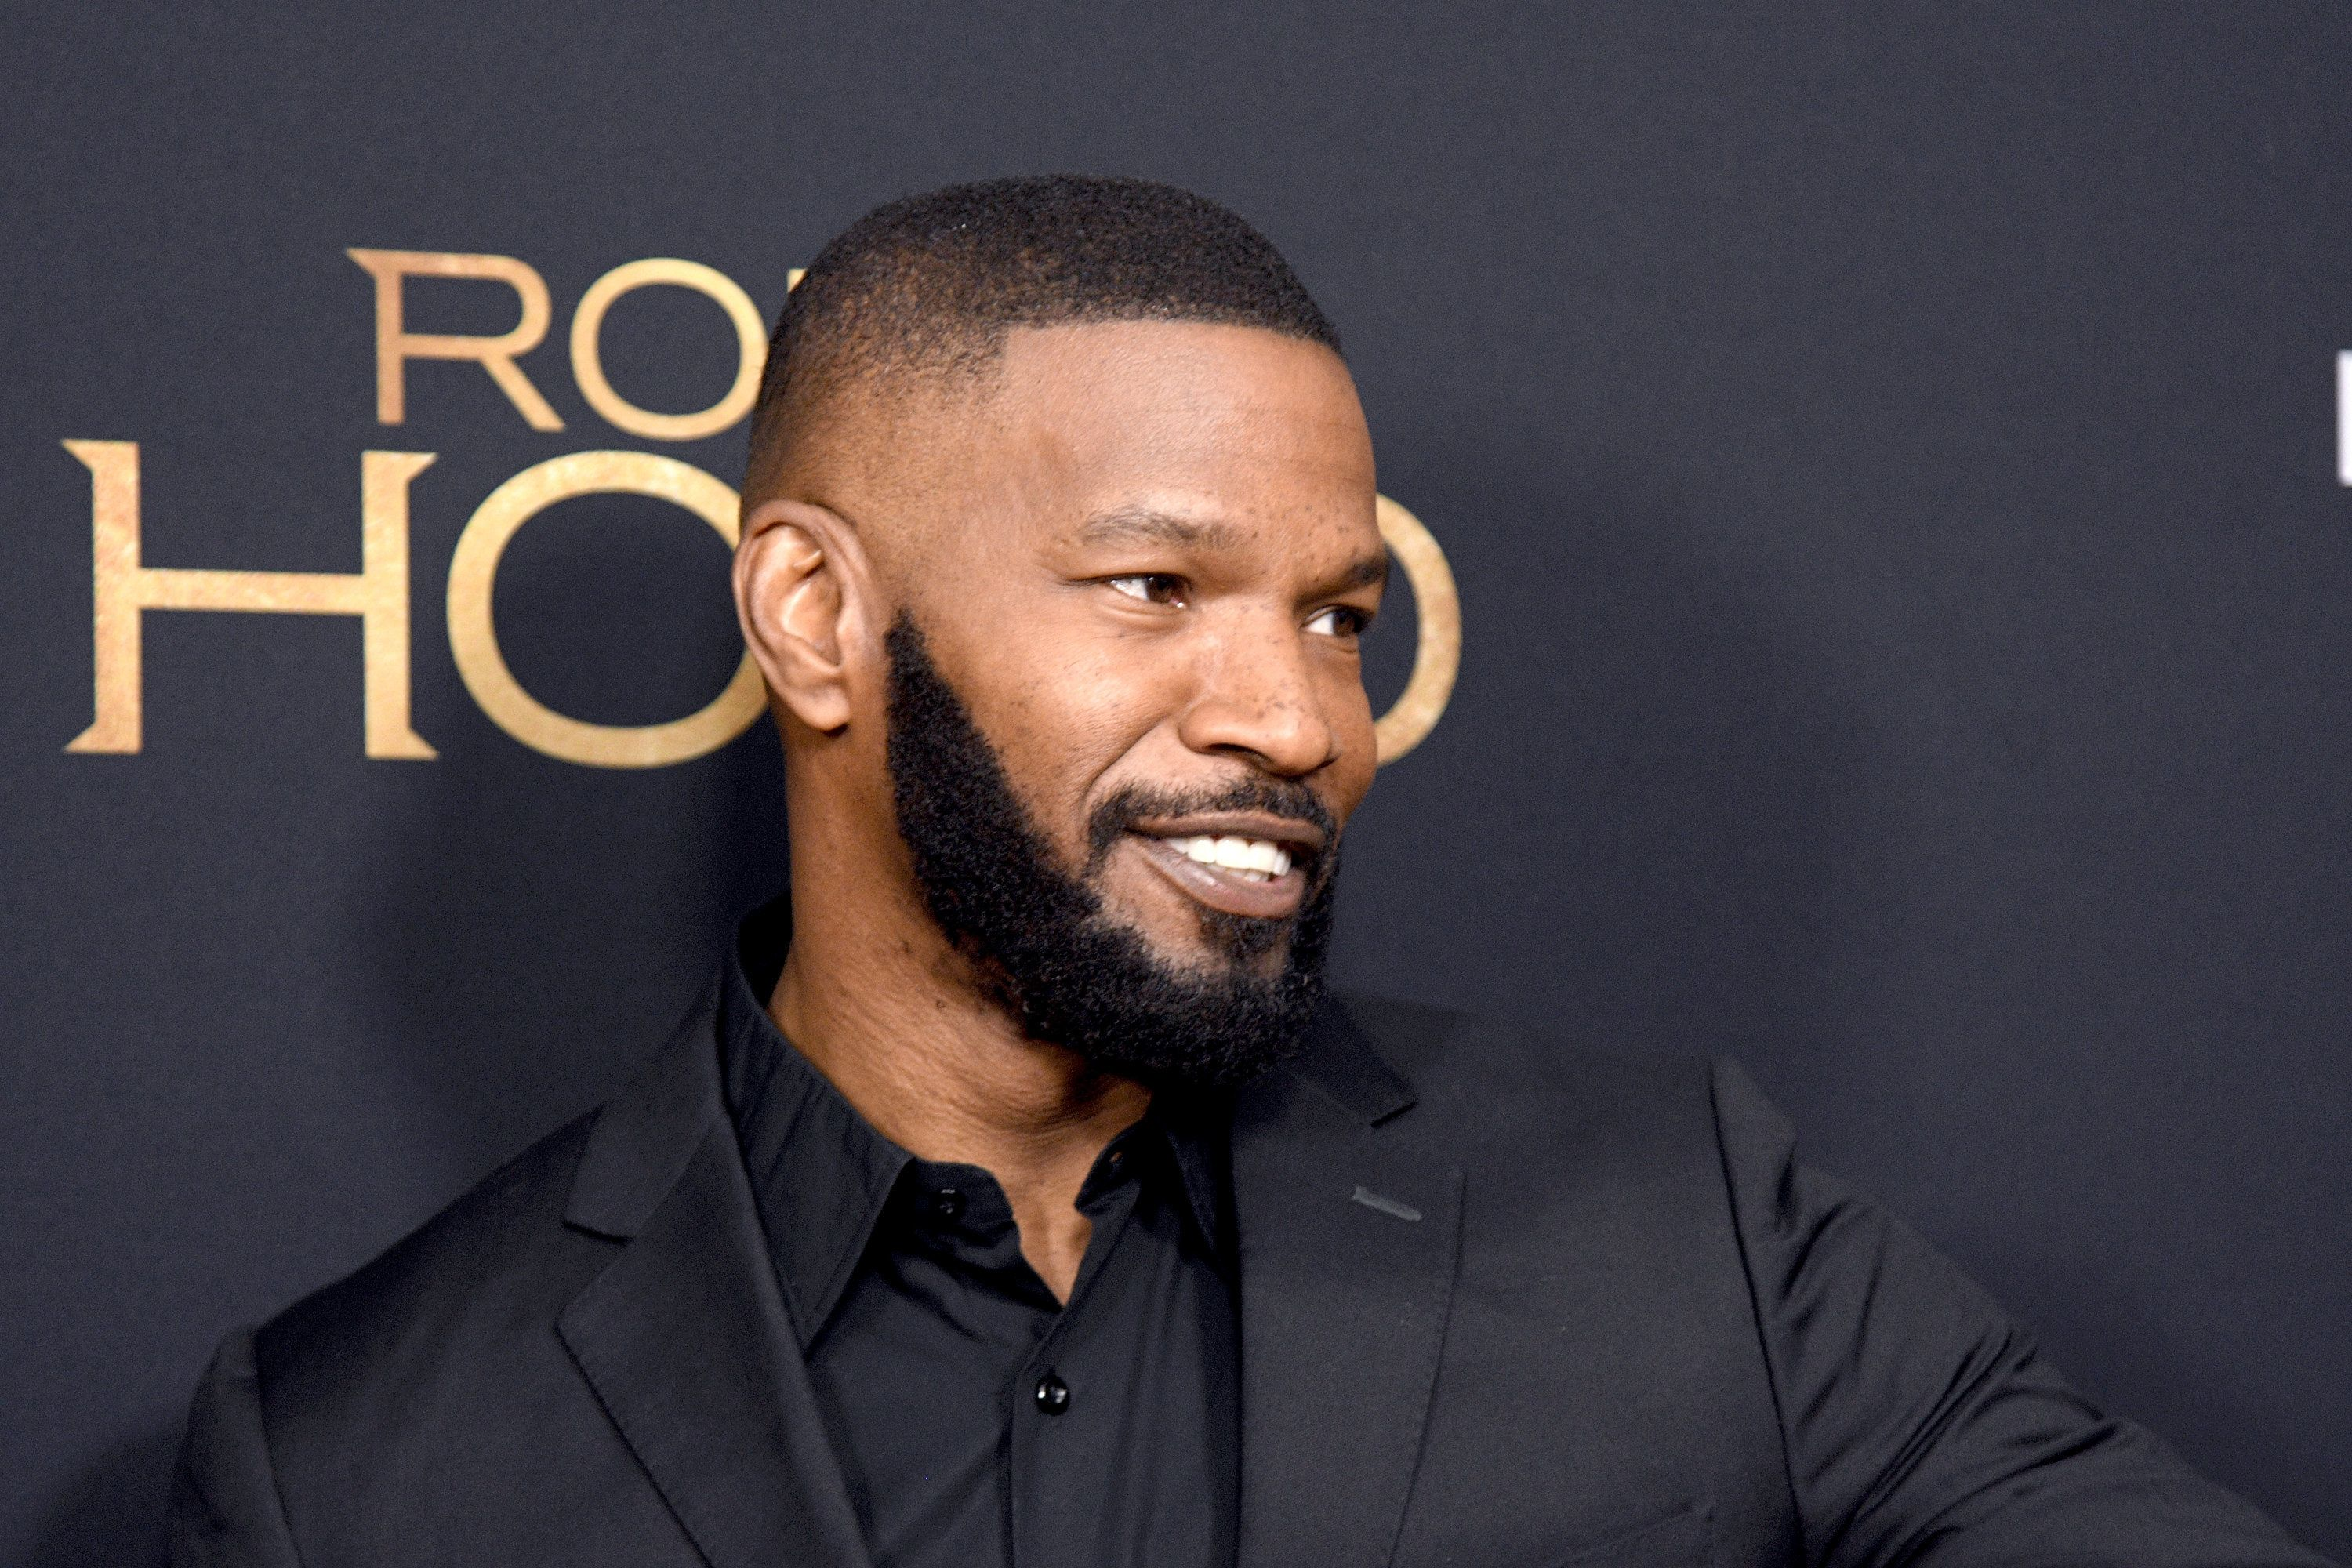 NEW YORK, NY - NOVEMBER 11:  Jamie Foxx attends the 'Robin Hood' New York screening at AMC Lincoln Square Theater on November 11, 2018 in New York City.  (Photo by Gary Gershoff/WireImage)